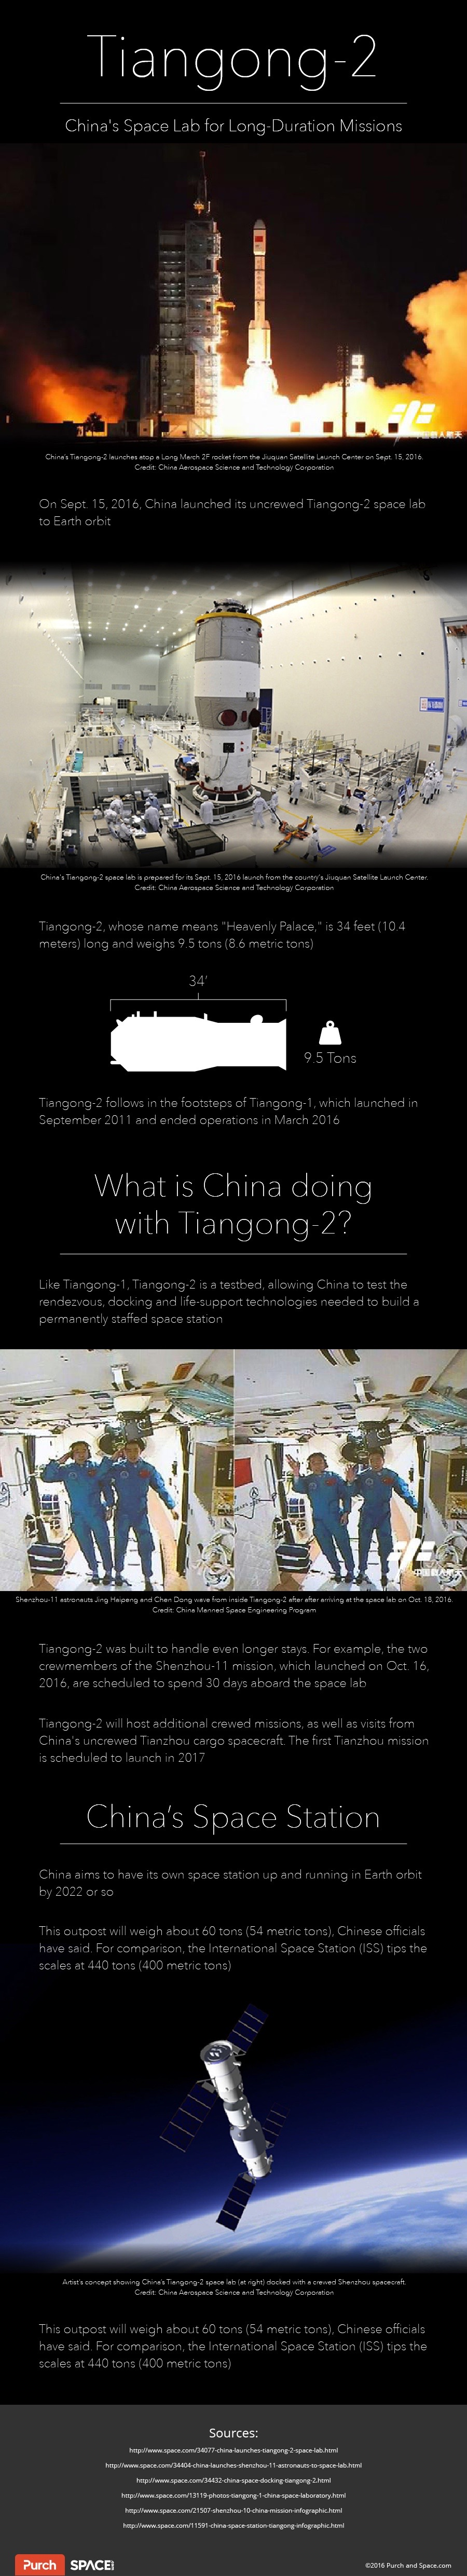 Tiangong-2: China's Space Lab for Long Missions (Infographic)